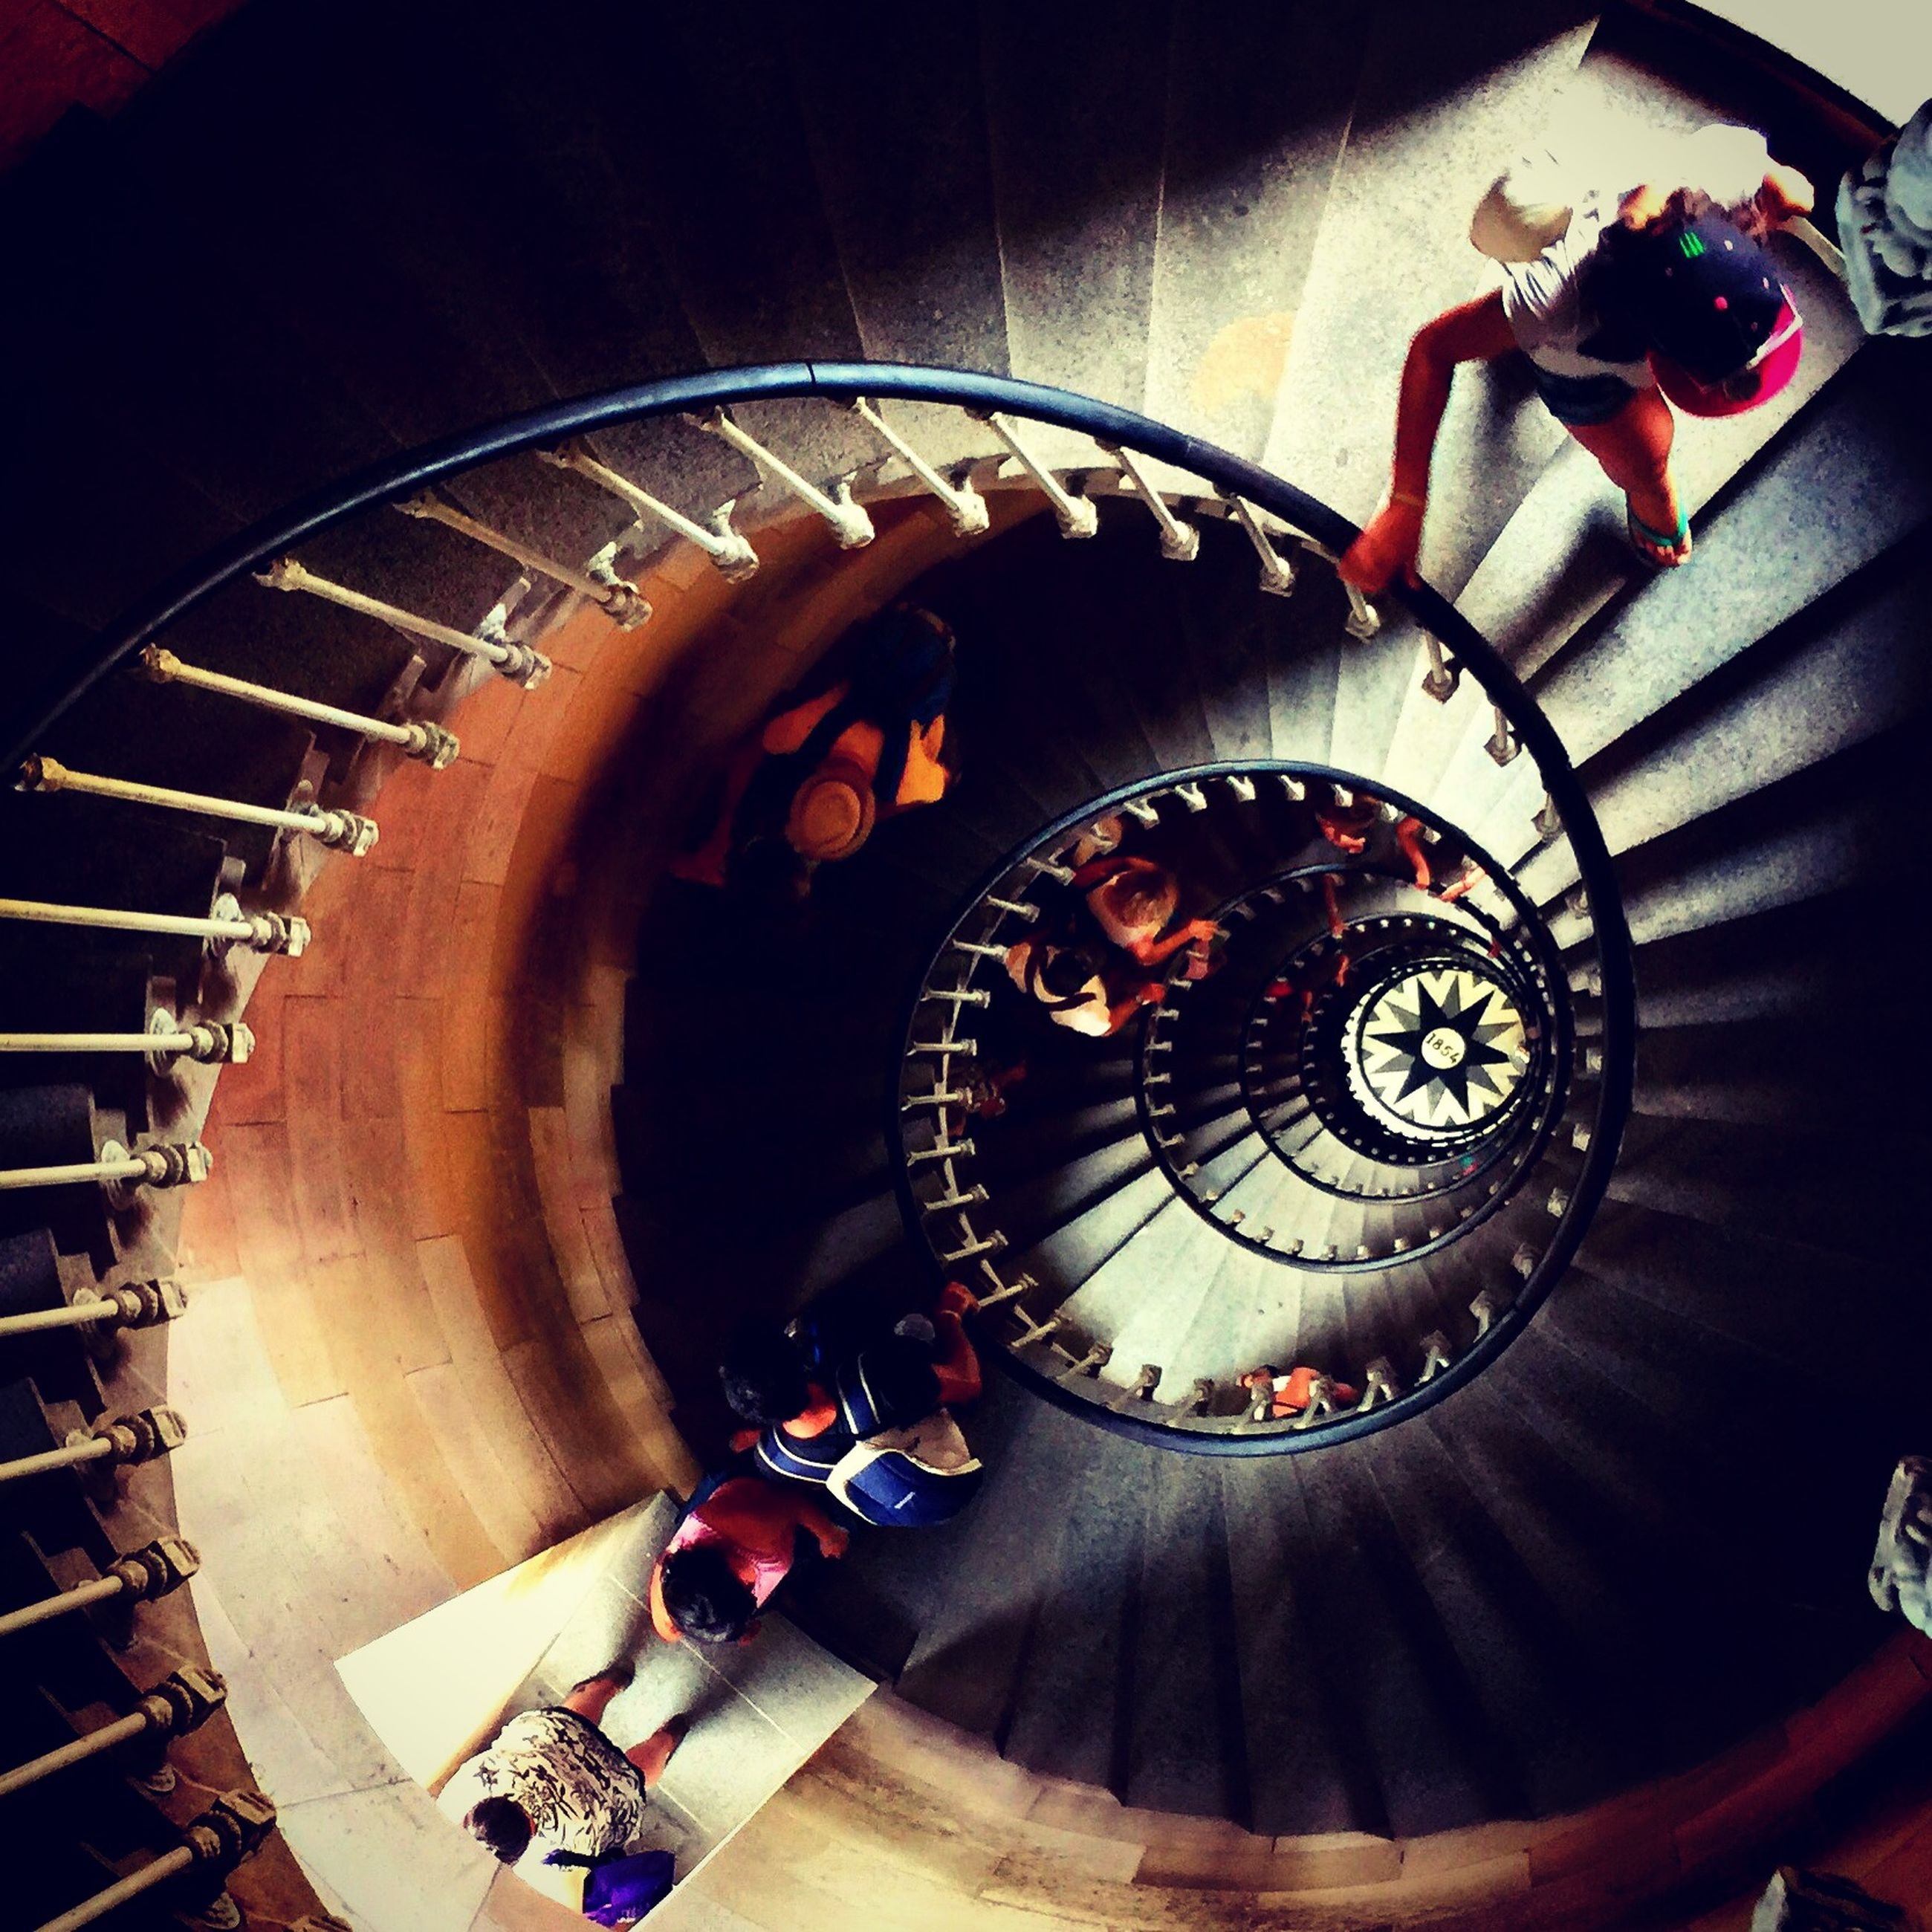 indoors, steps and staircases, staircase, technology, steps, spiral staircase, spiral, high angle view, circle, railing, illuminated, arts culture and entertainment, machine part, machinery, metal, built structure, close-up, music, low angle view, photography themes